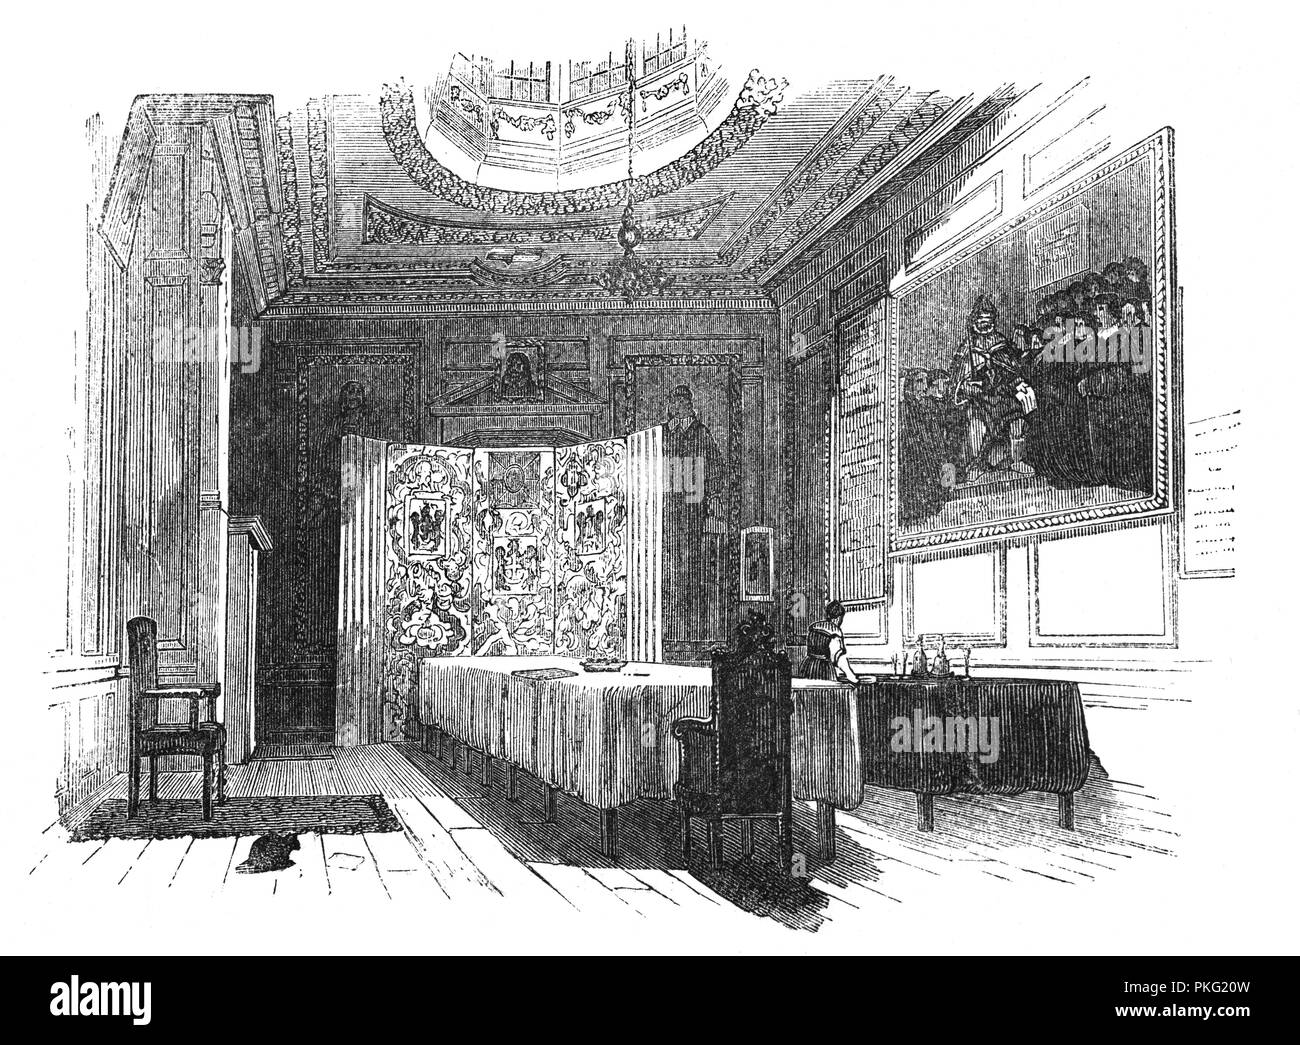 The courtroom of the Worshipful Company of Barbers, one of the Livery Companies of the City of London. The Fellowship of Surgeons merged with the Barbers' Company in 1540, forming the Company of Barbers and Surgeons.  The Act specified that no surgeon could cut hair or shave another, and that no barber could practice surgery; the only common activity was to be the extraction of teeth. The barber pole, featuring red and white spiralling stripes, indicated the two crafts (surgery in red and barbering in white).  Following the rising professionalism of the (surgeons) trade they broke away in 1745 - Stock Image